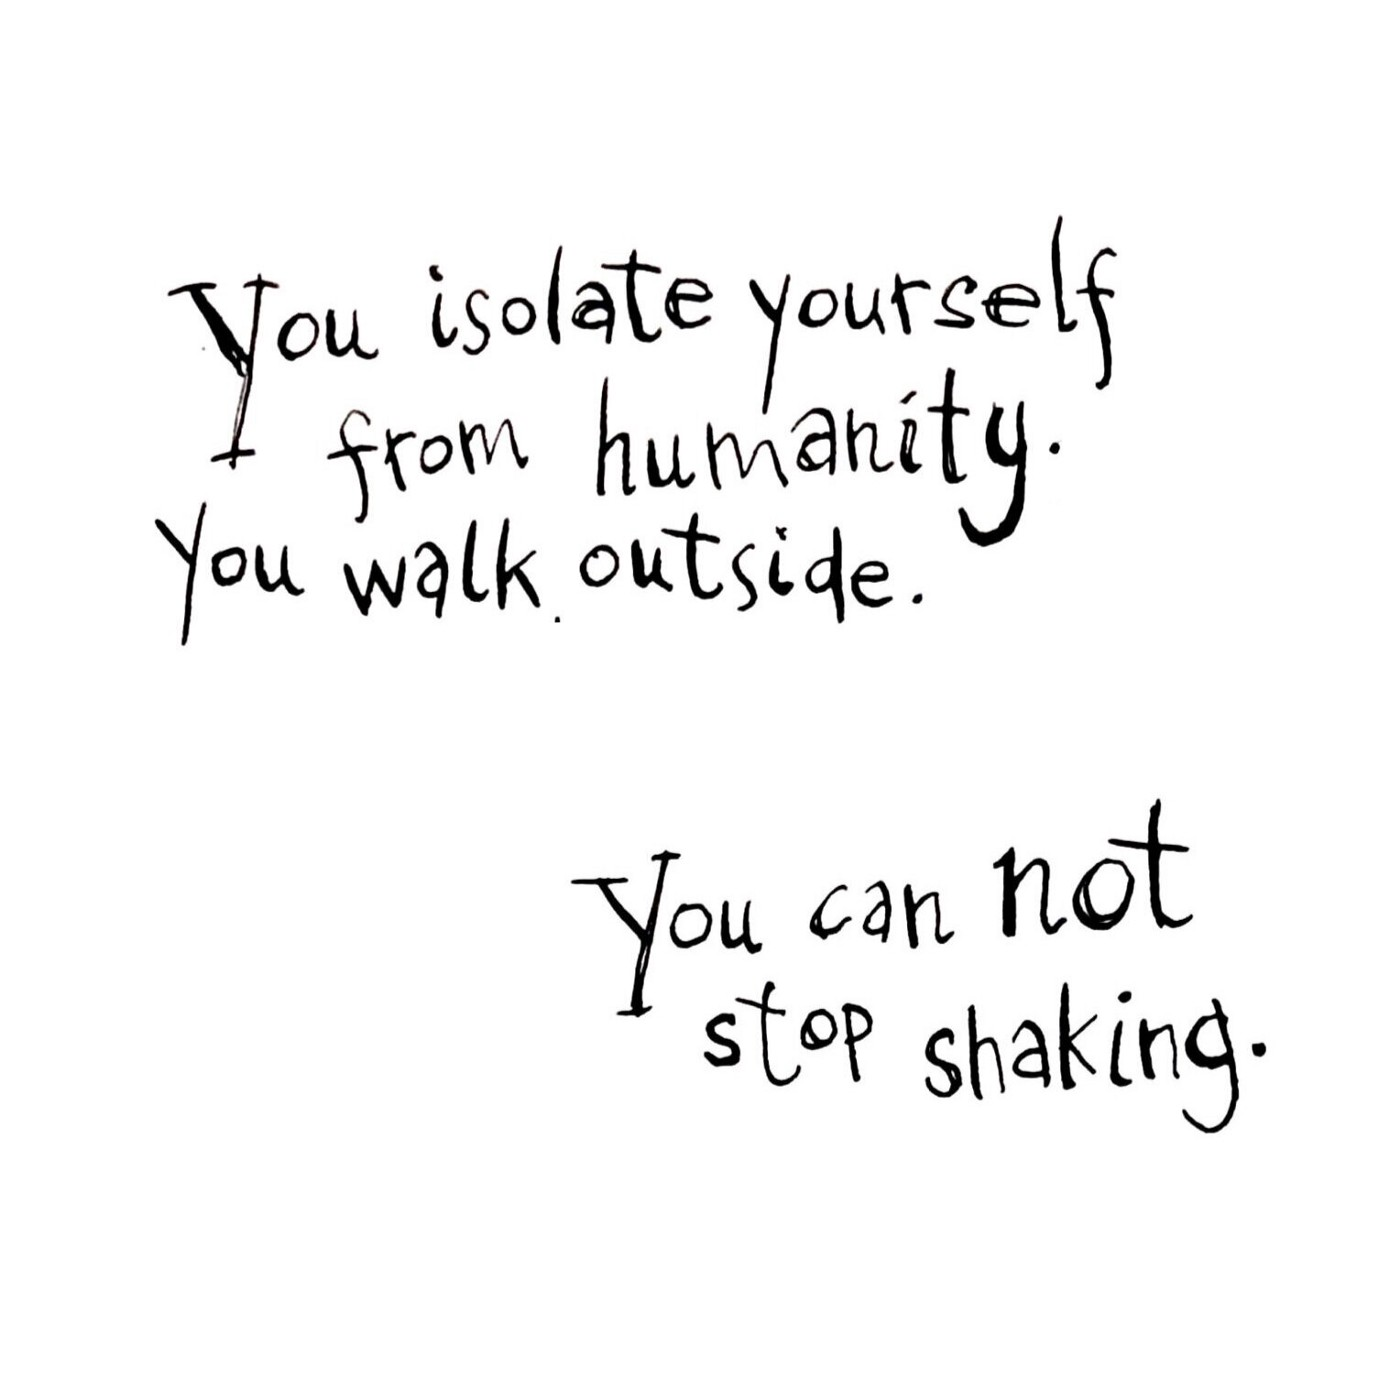 You isolate yourself from humanity. You walk outside. You can not stop shaking.